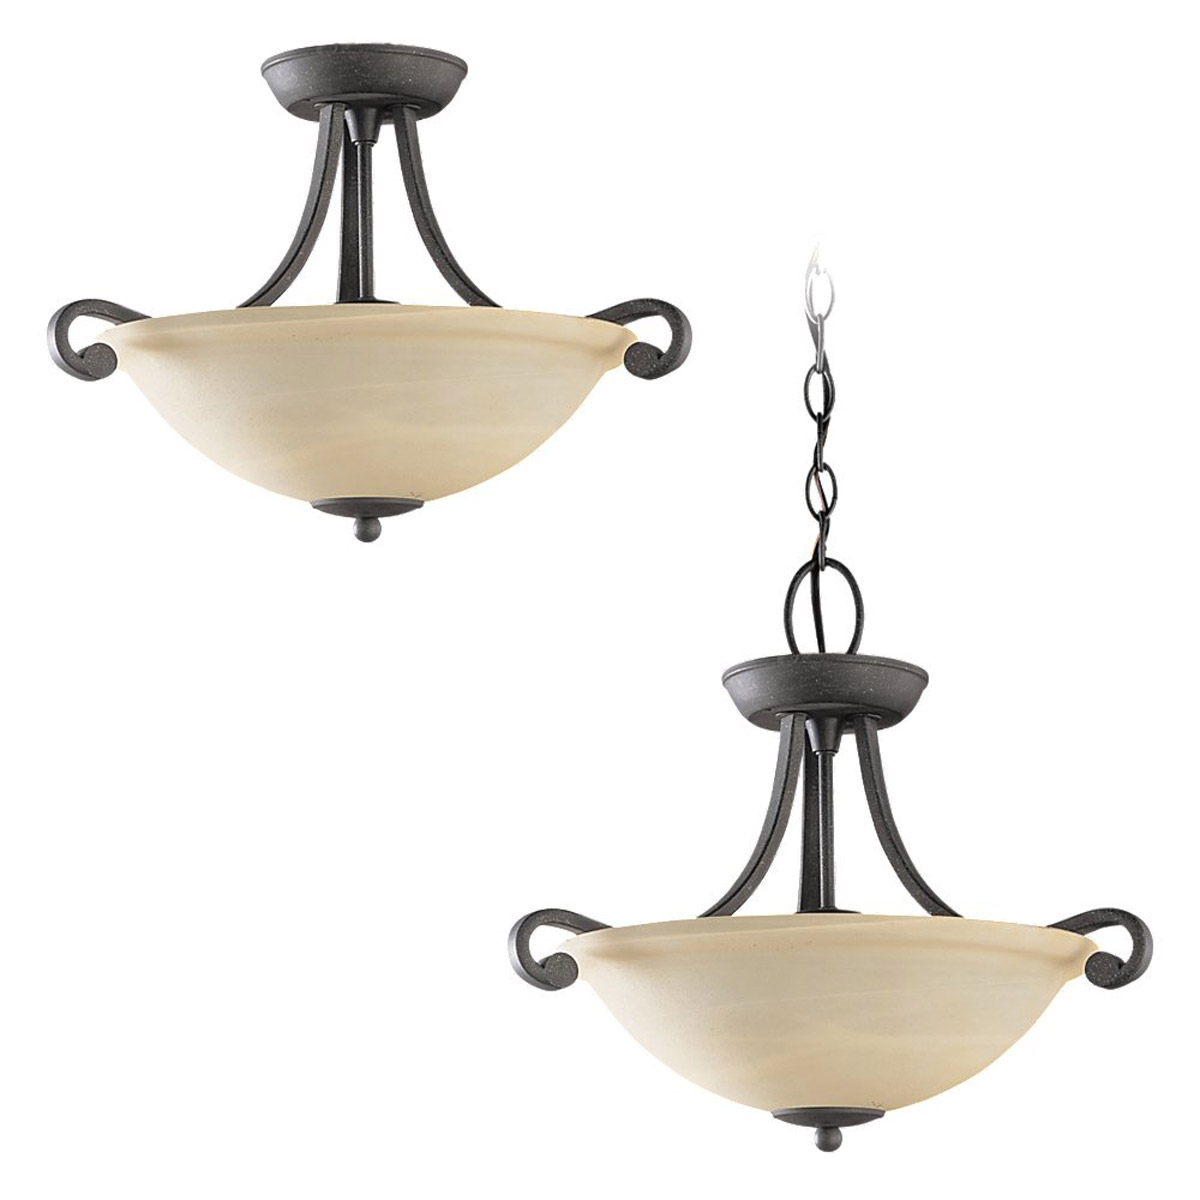 Sea Gull Lighting Serenity 3 Light Semi-Flush Mount in Weathered Iron 59159BLE-07 photo